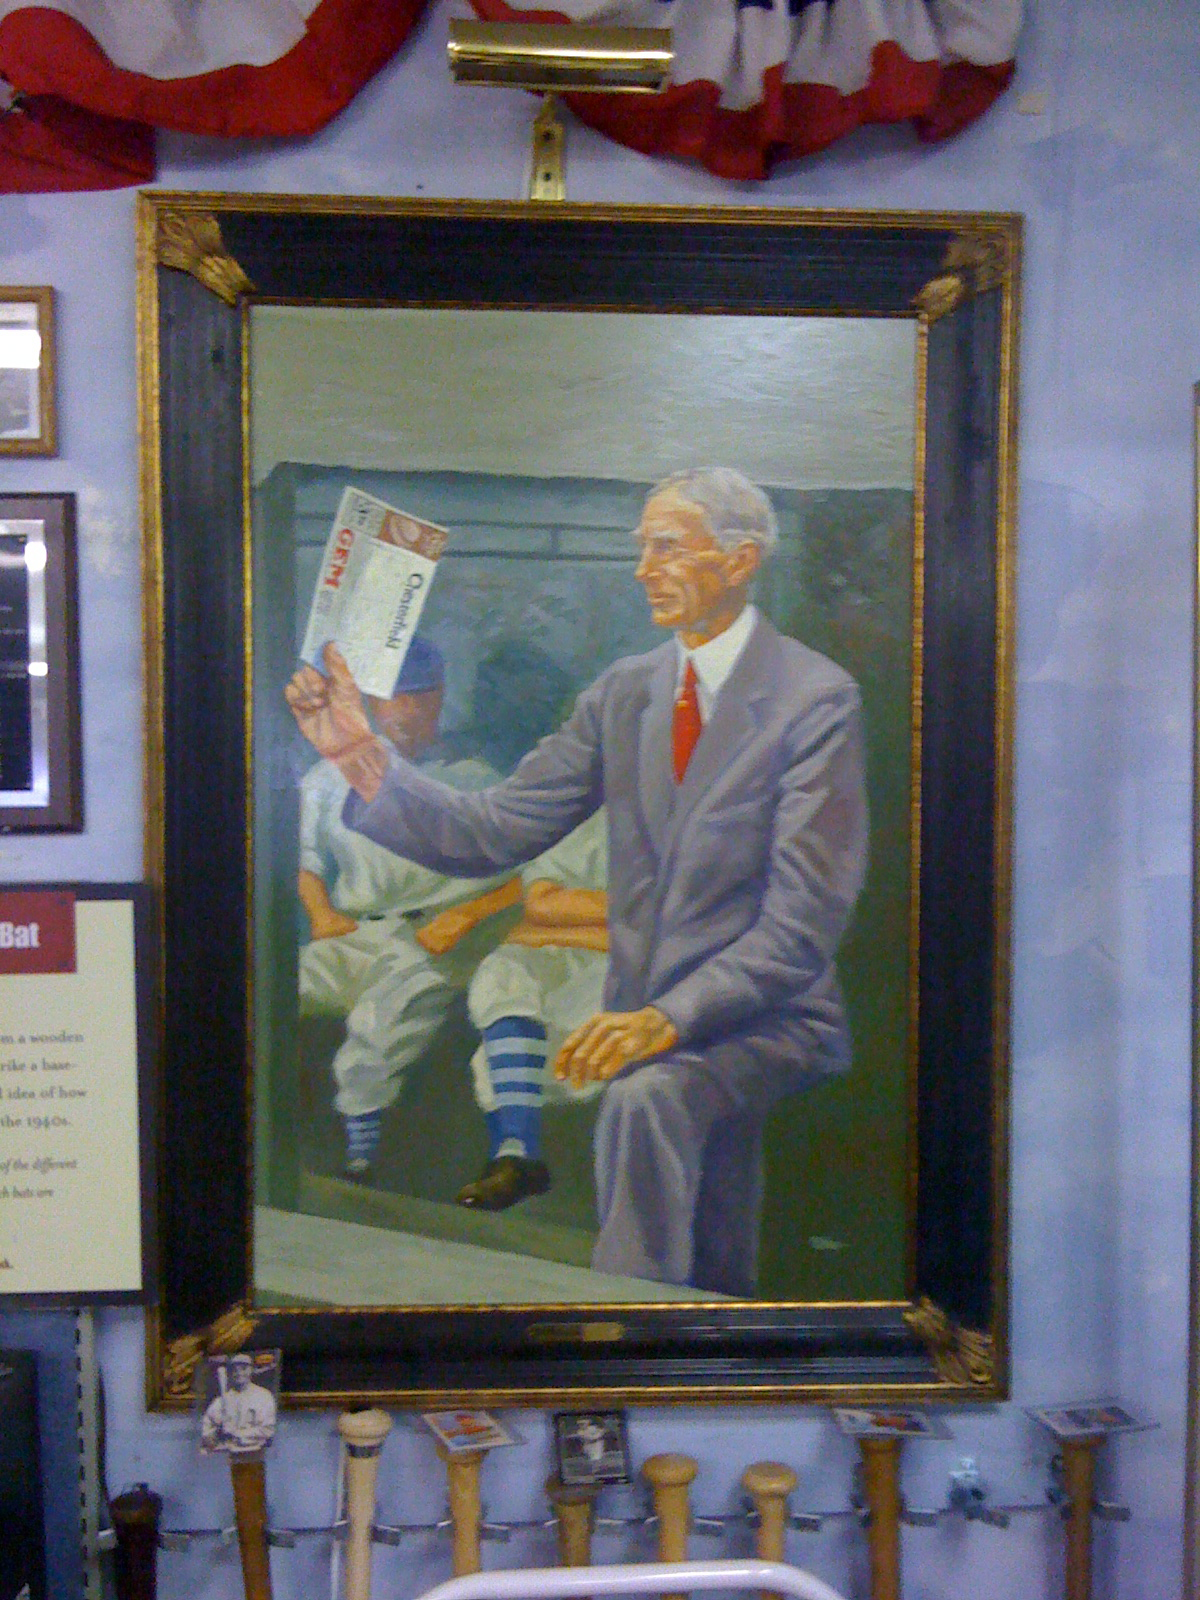 Painting of Connie Mack, Manager and Owner of the Philadelphia Athletics for over 50 years.